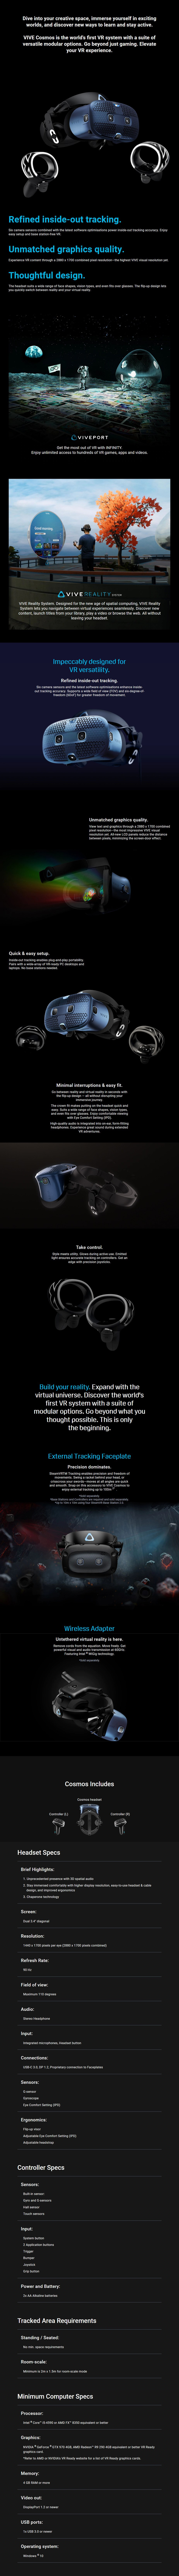 HTC Vive Cosmos Virtual Reality Kit with Link Box - Desktop Overview 1